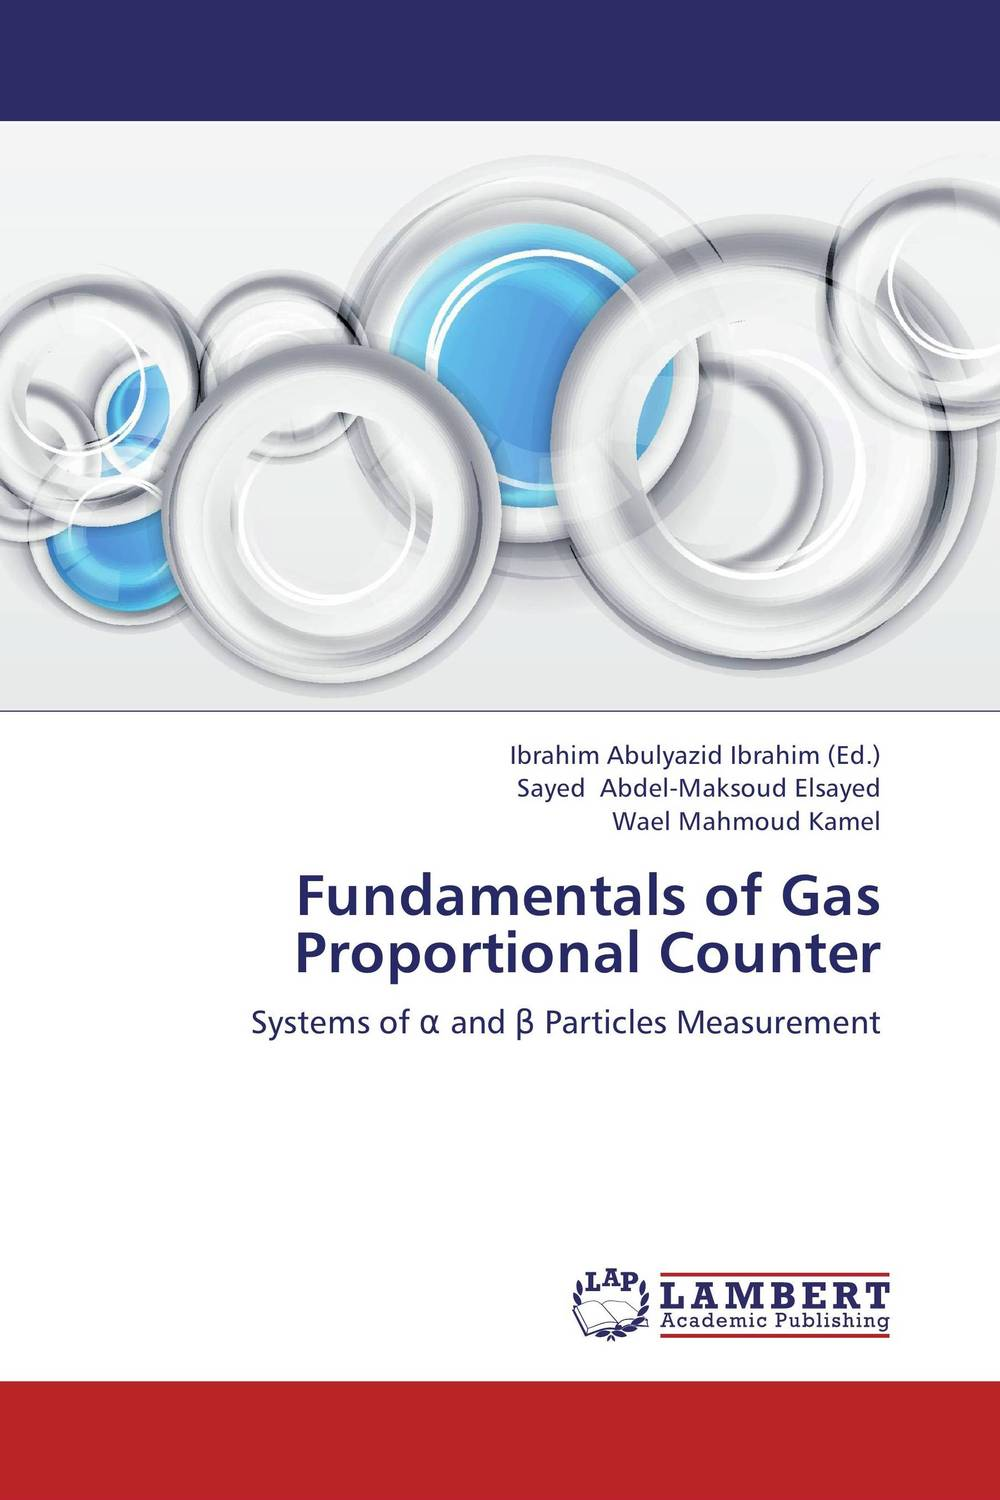 Fundamentals of Gas Proportional Counter fundamentals of physics extended 9th edition international student version with wileyplus set